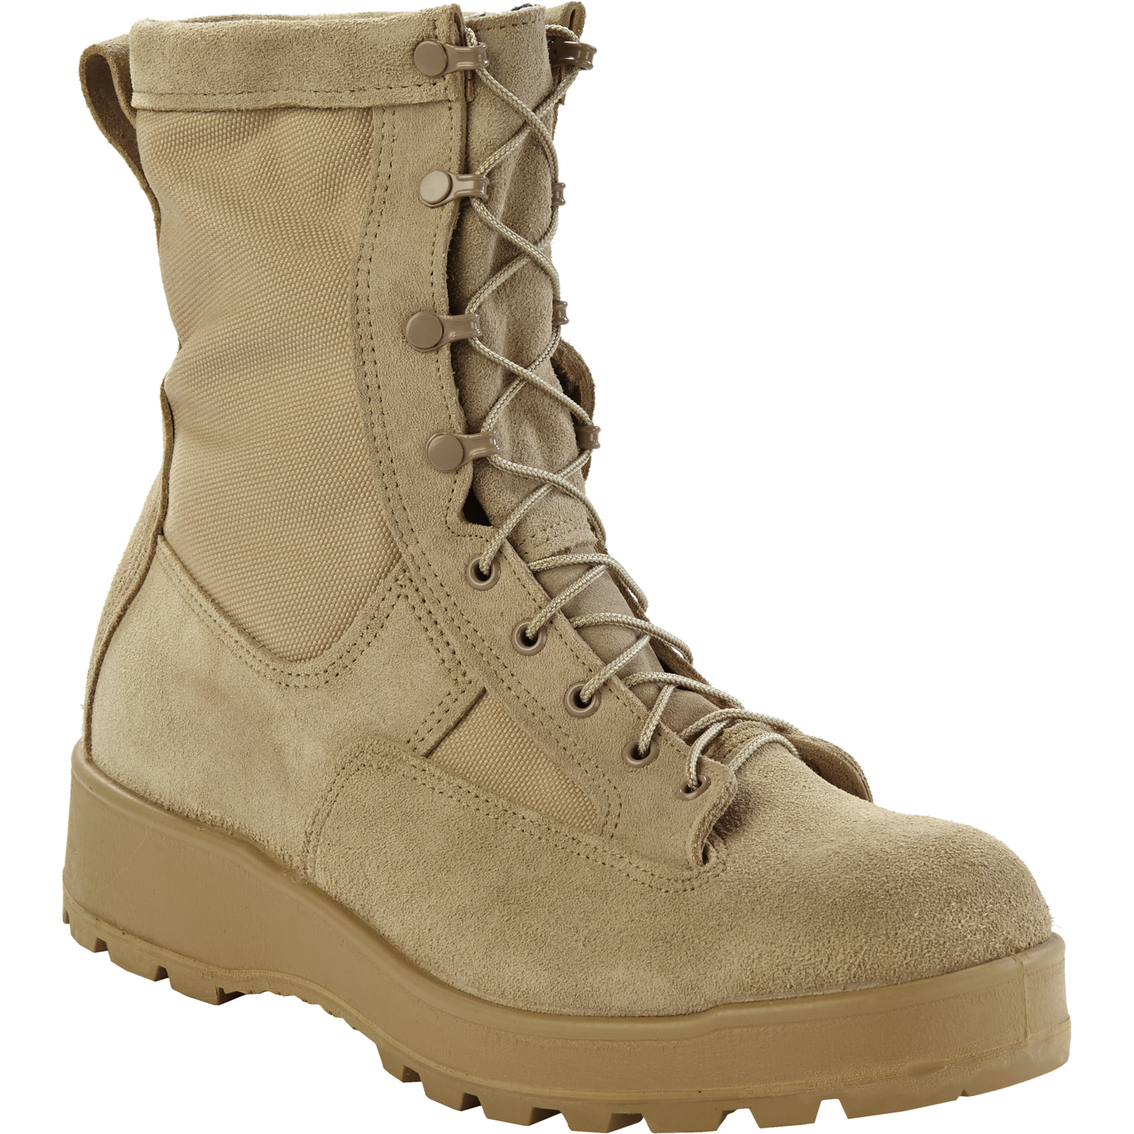 Dlats Issued Army Temperate Weather Combat Boots | Desert Tan ...